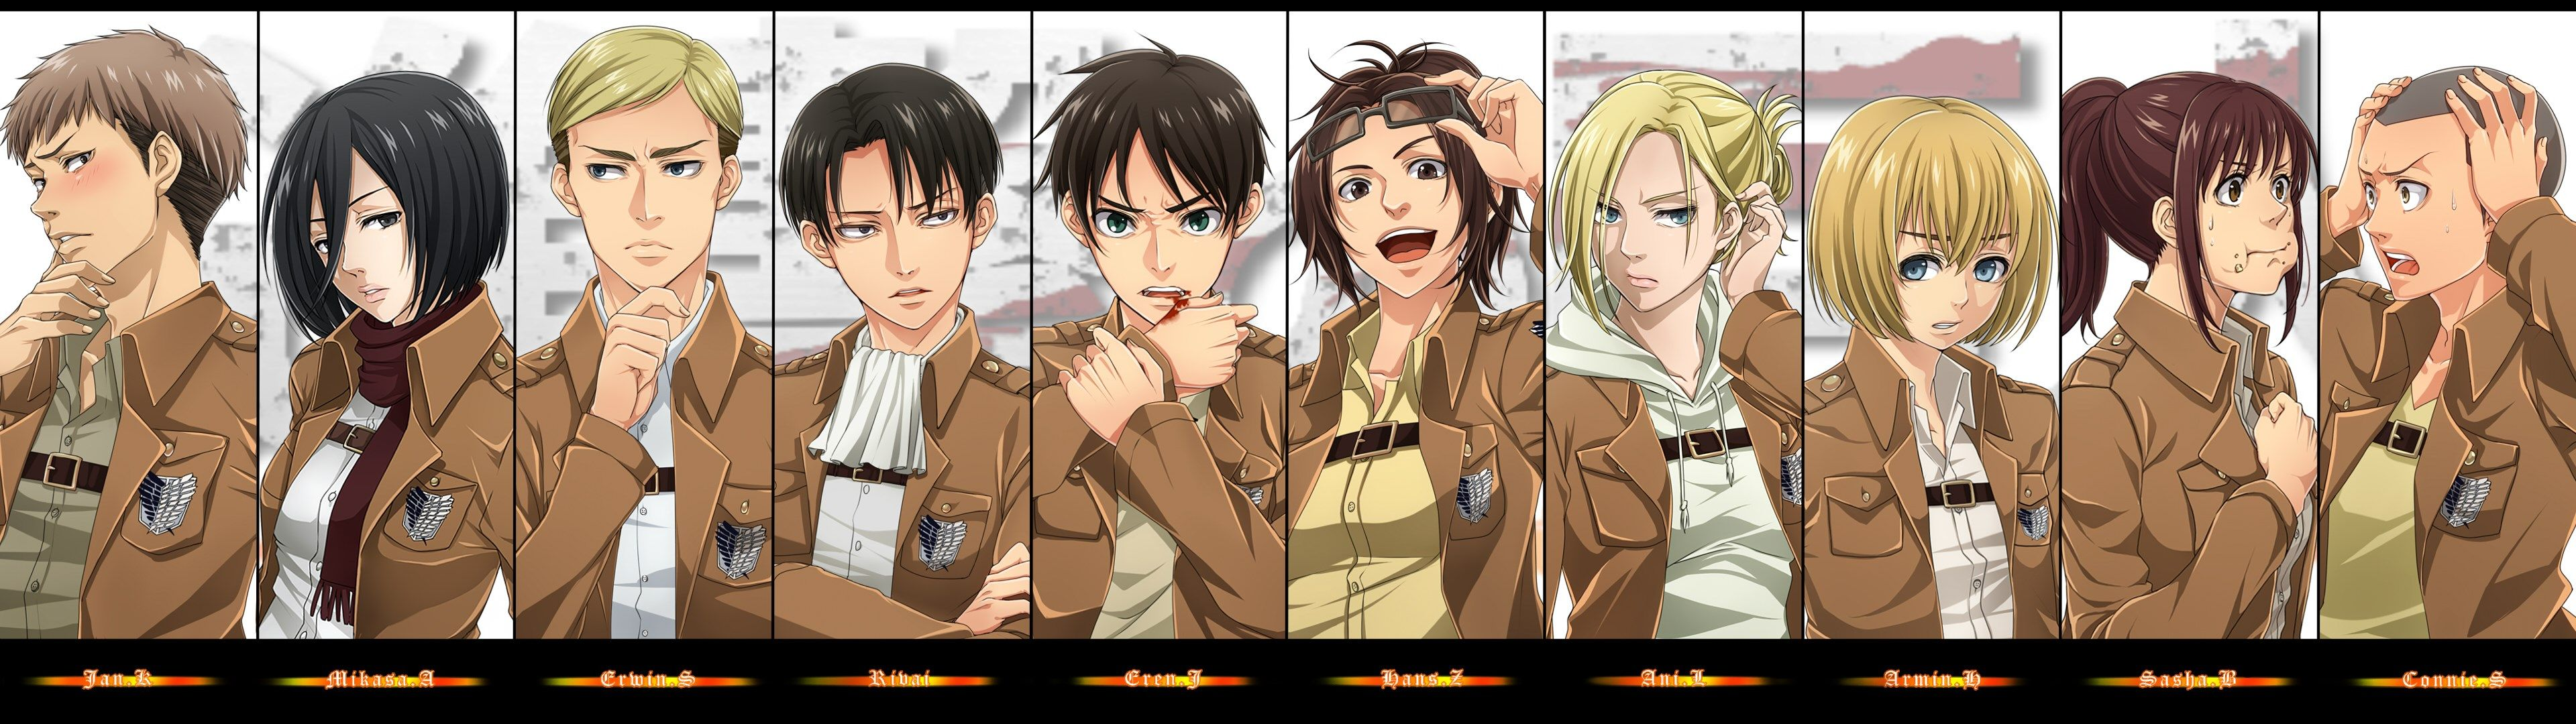 Free Desktop Wallpaper Downloads Attack On Titan Attack On Titan Category Gambar